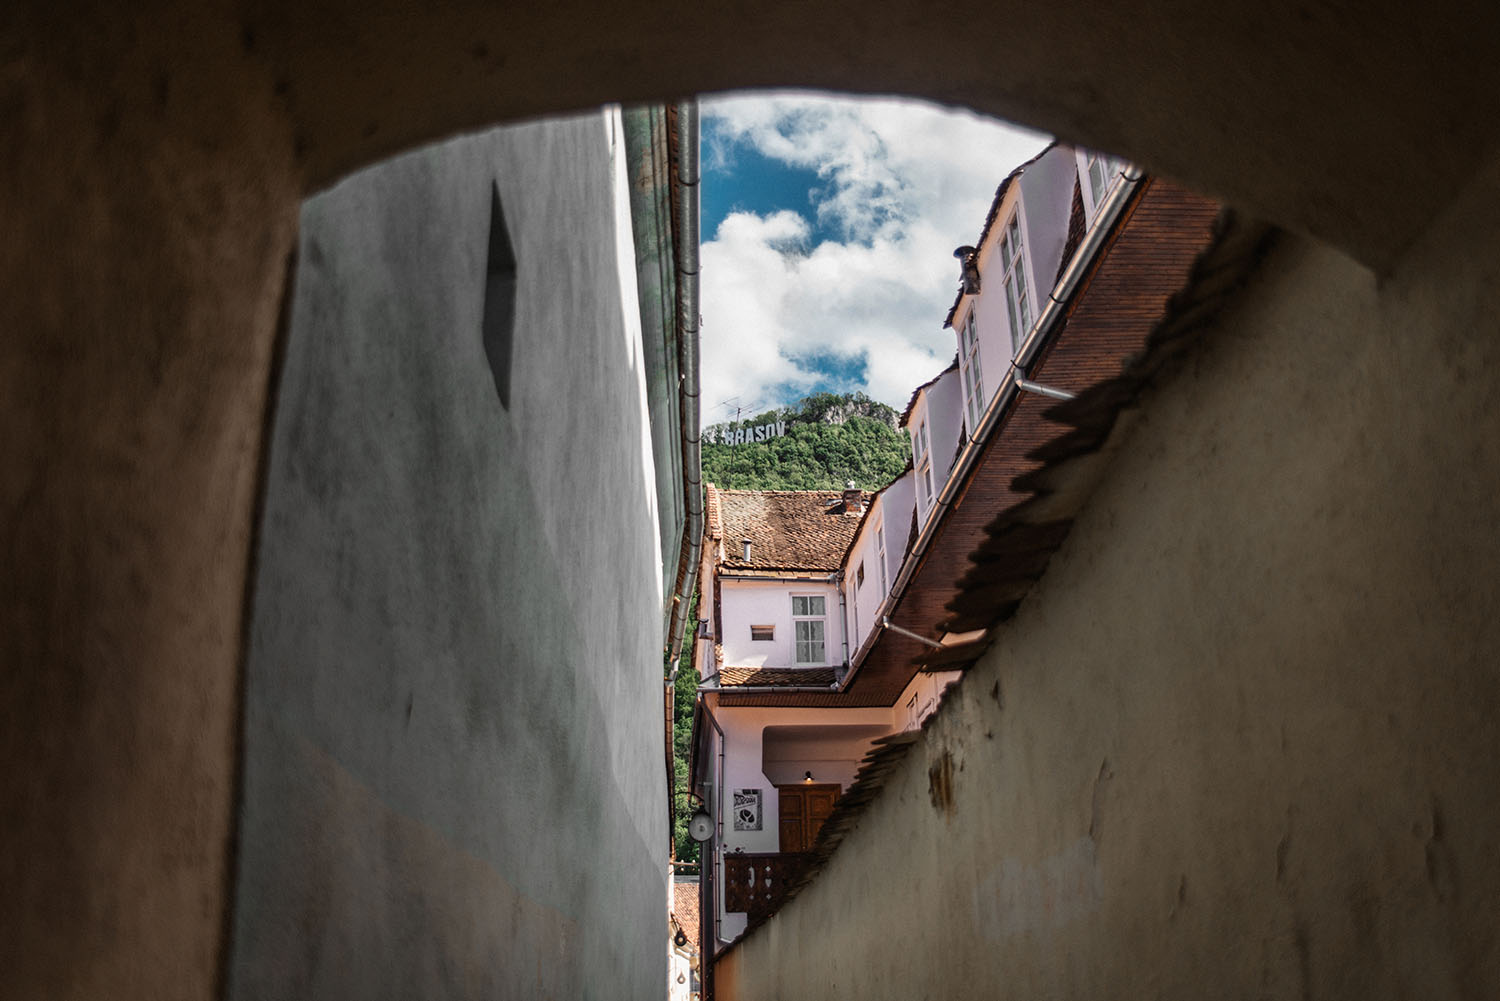 Strada Sforii, one of the narrowest street in the city of Brașov, Romania